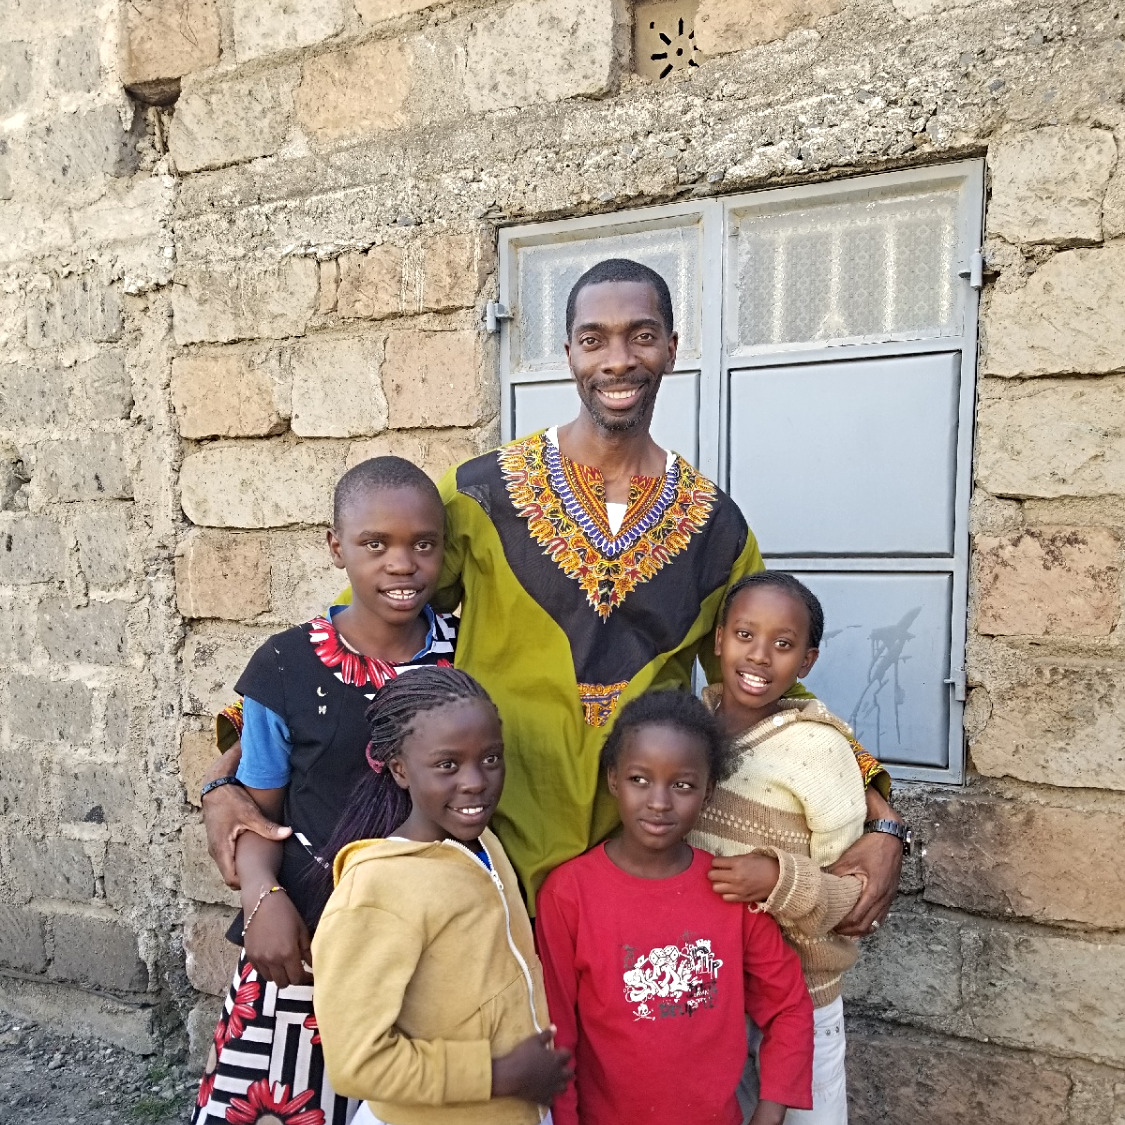 Mission Trip To Kenya